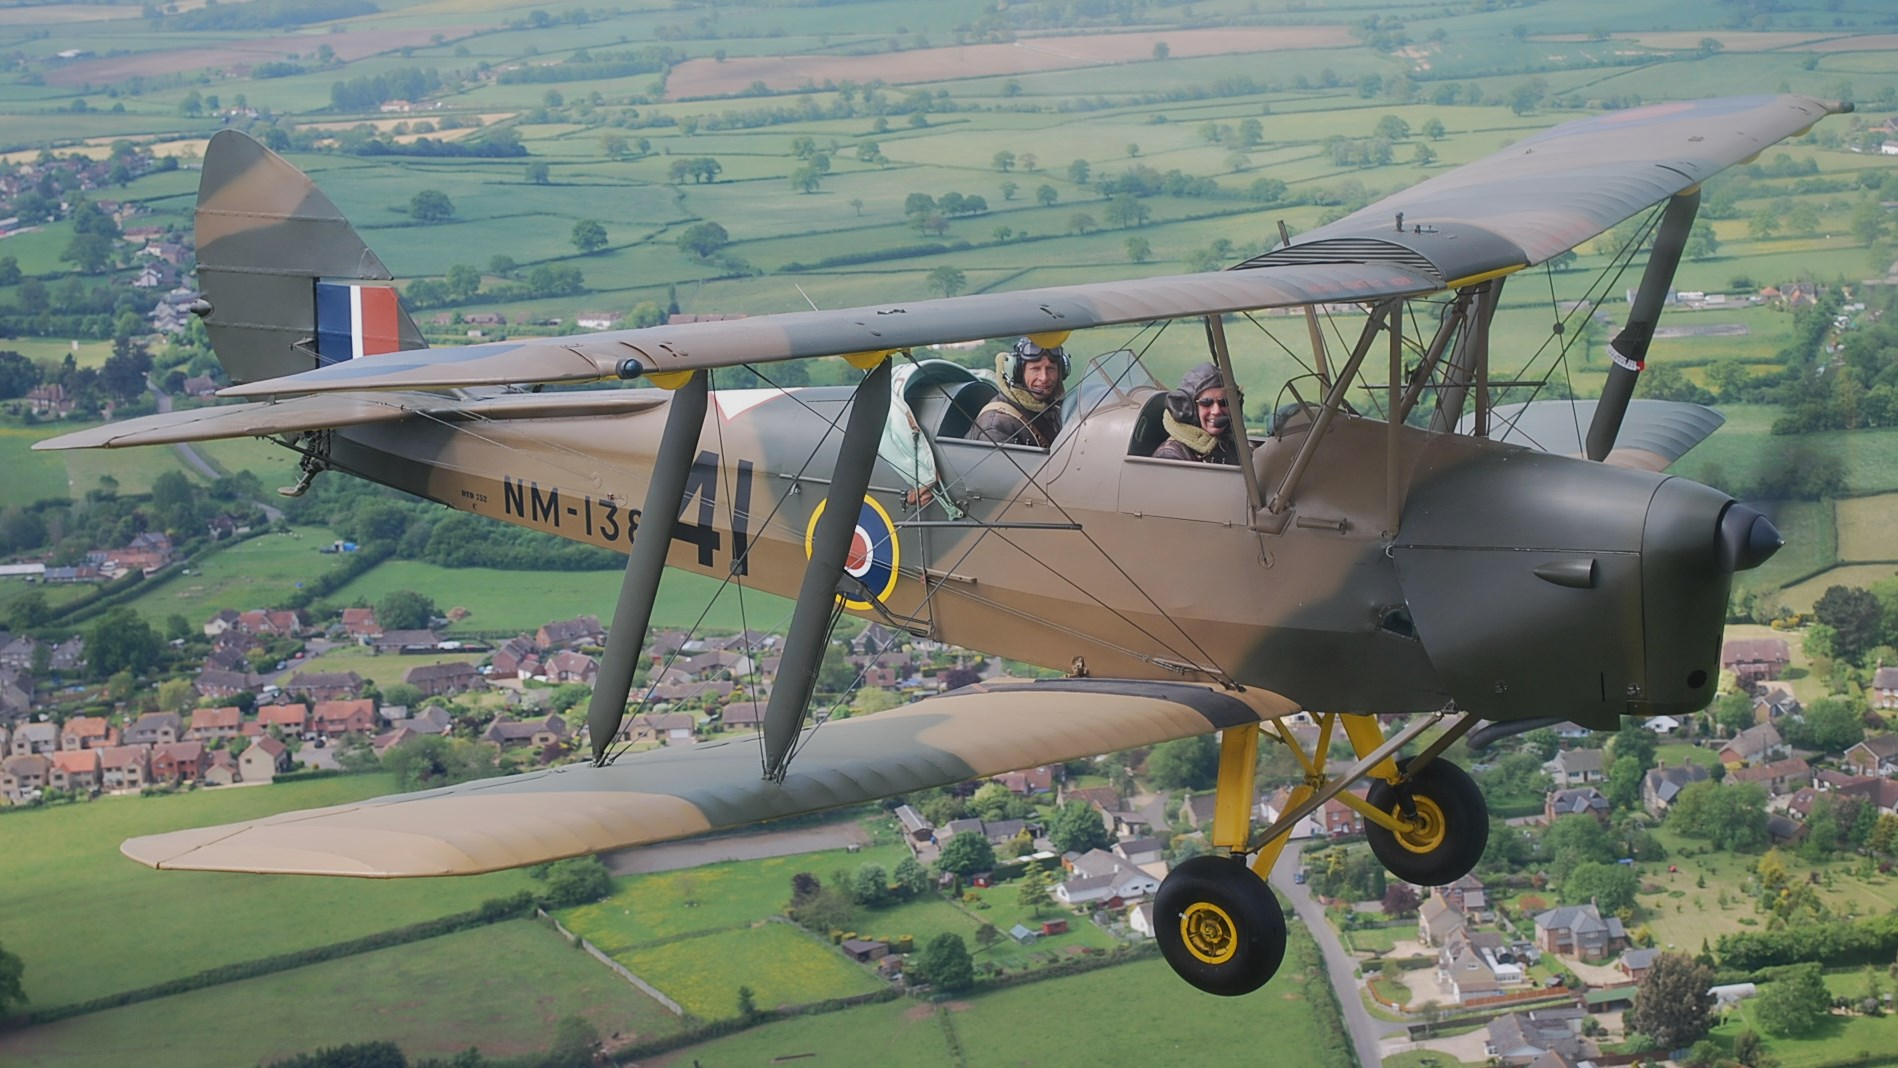 de Havilland Tiger Moth DH 82 A - NM 138 G-ANEW